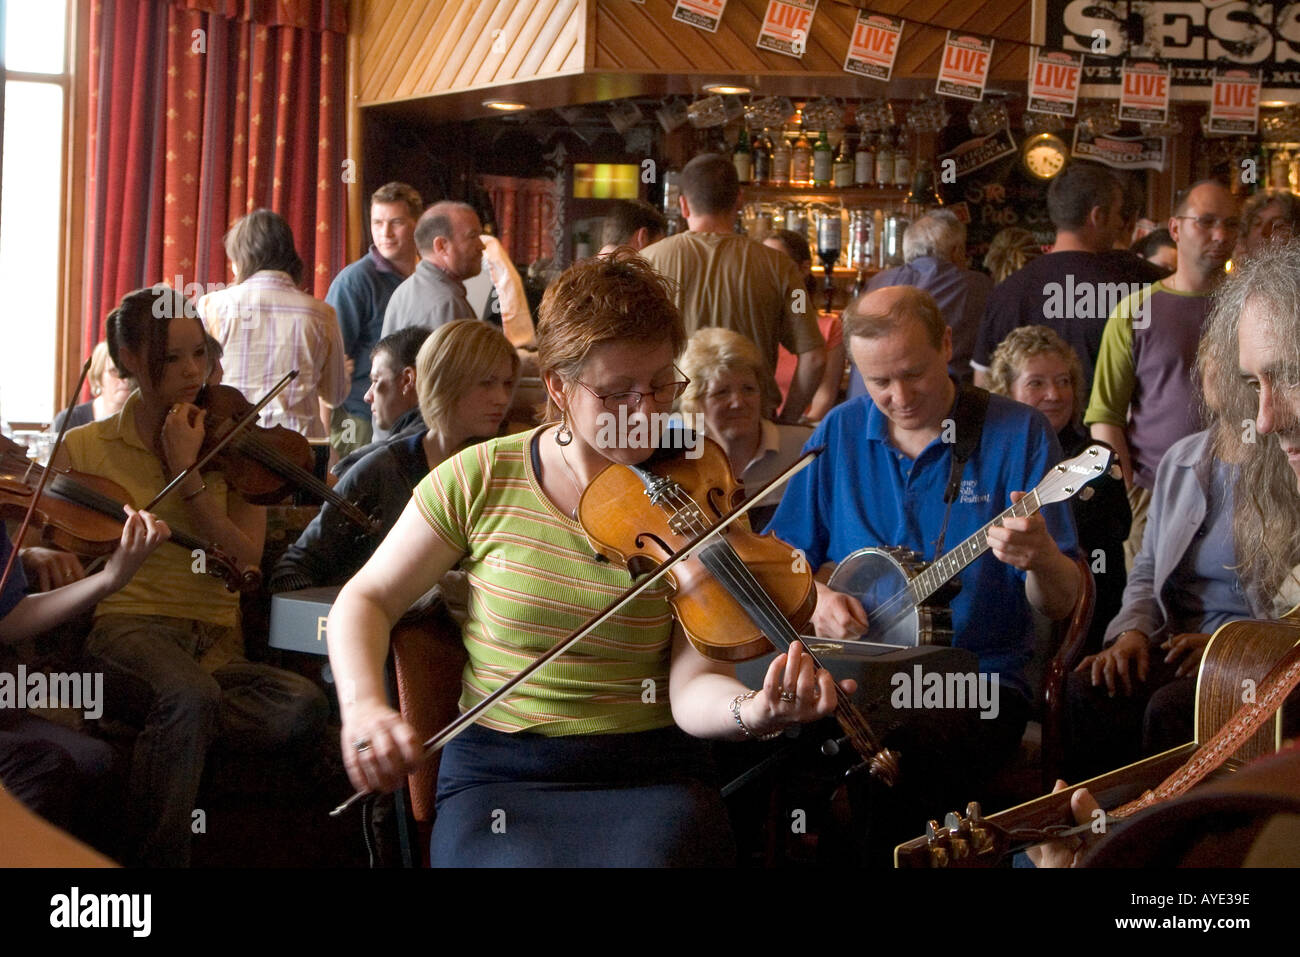 dh Orkney Folk Festival STROMNESS ORKNEY Woman musician playing fiddle music pub player female uk - Stock Image